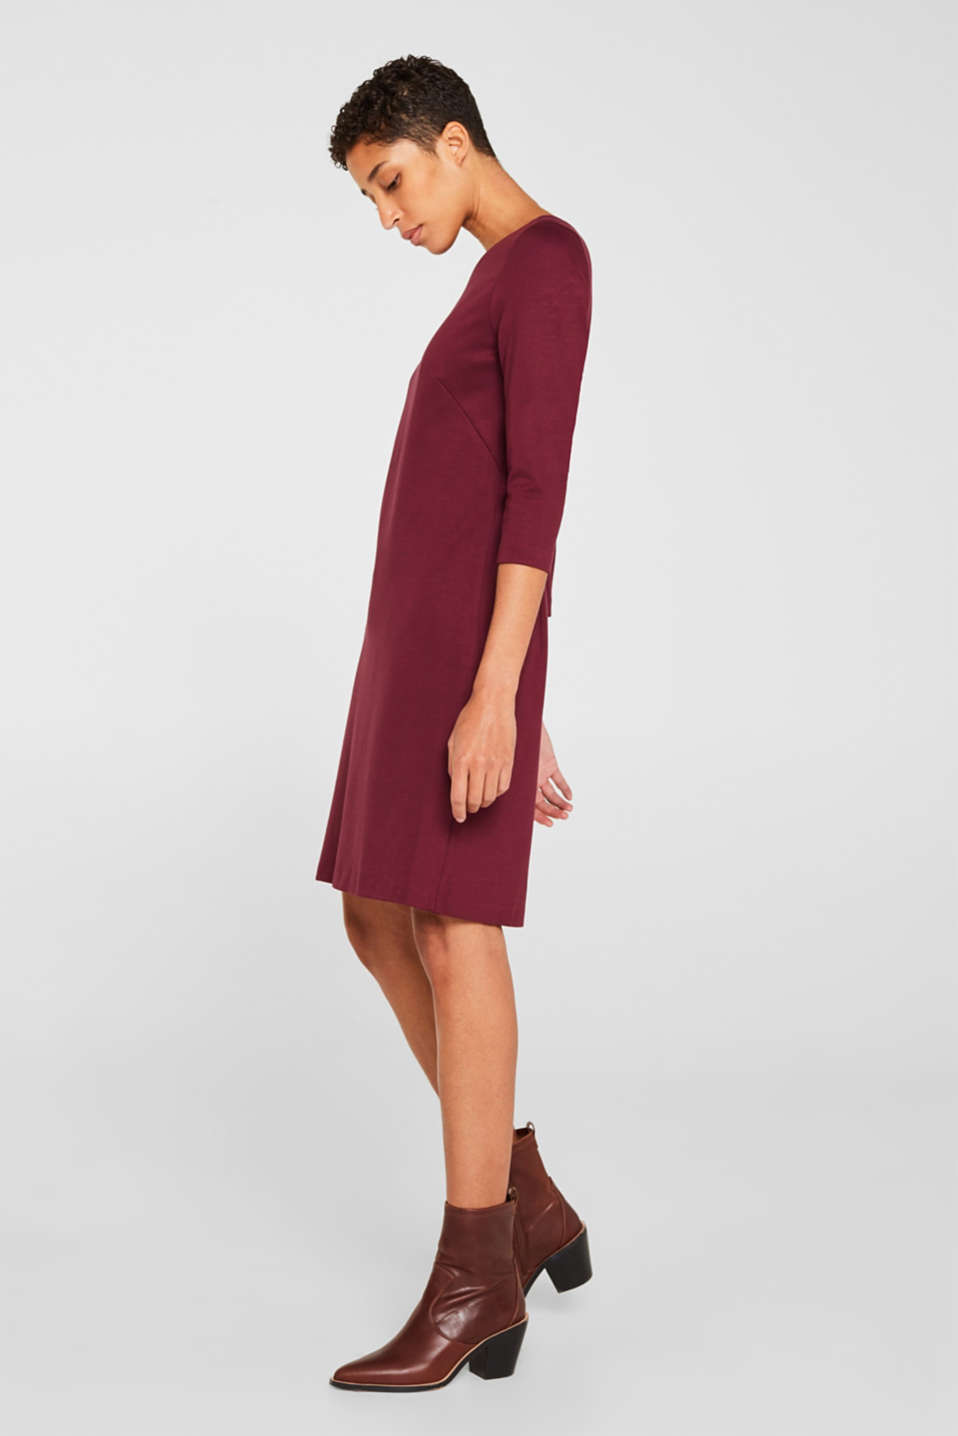 Stretch dress with a cut-out at the back, BORDEAUX RED, detail image number 1